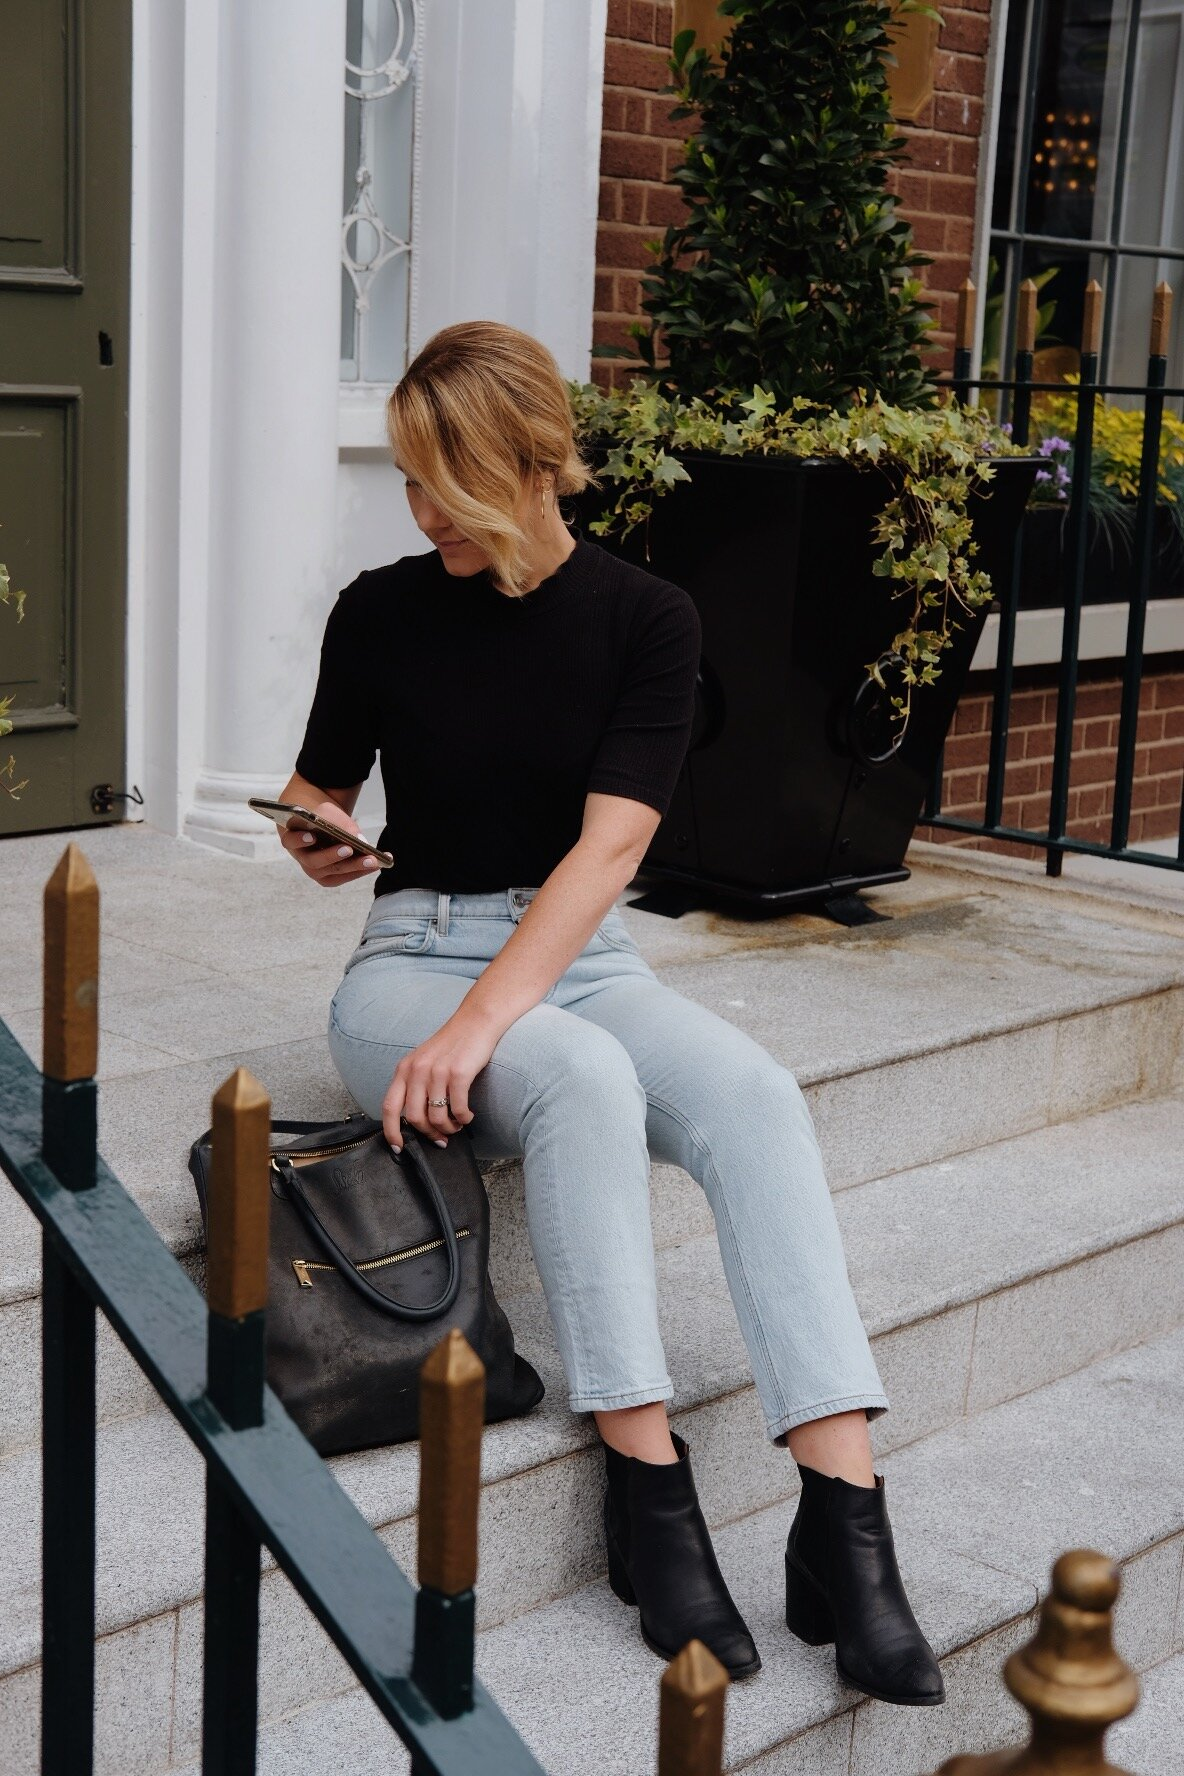 On-the-go travel outfit idea // A Week Of Minimalist Travel Outfits With Ellie Hughes From Selflessly Styled on The Good Trade